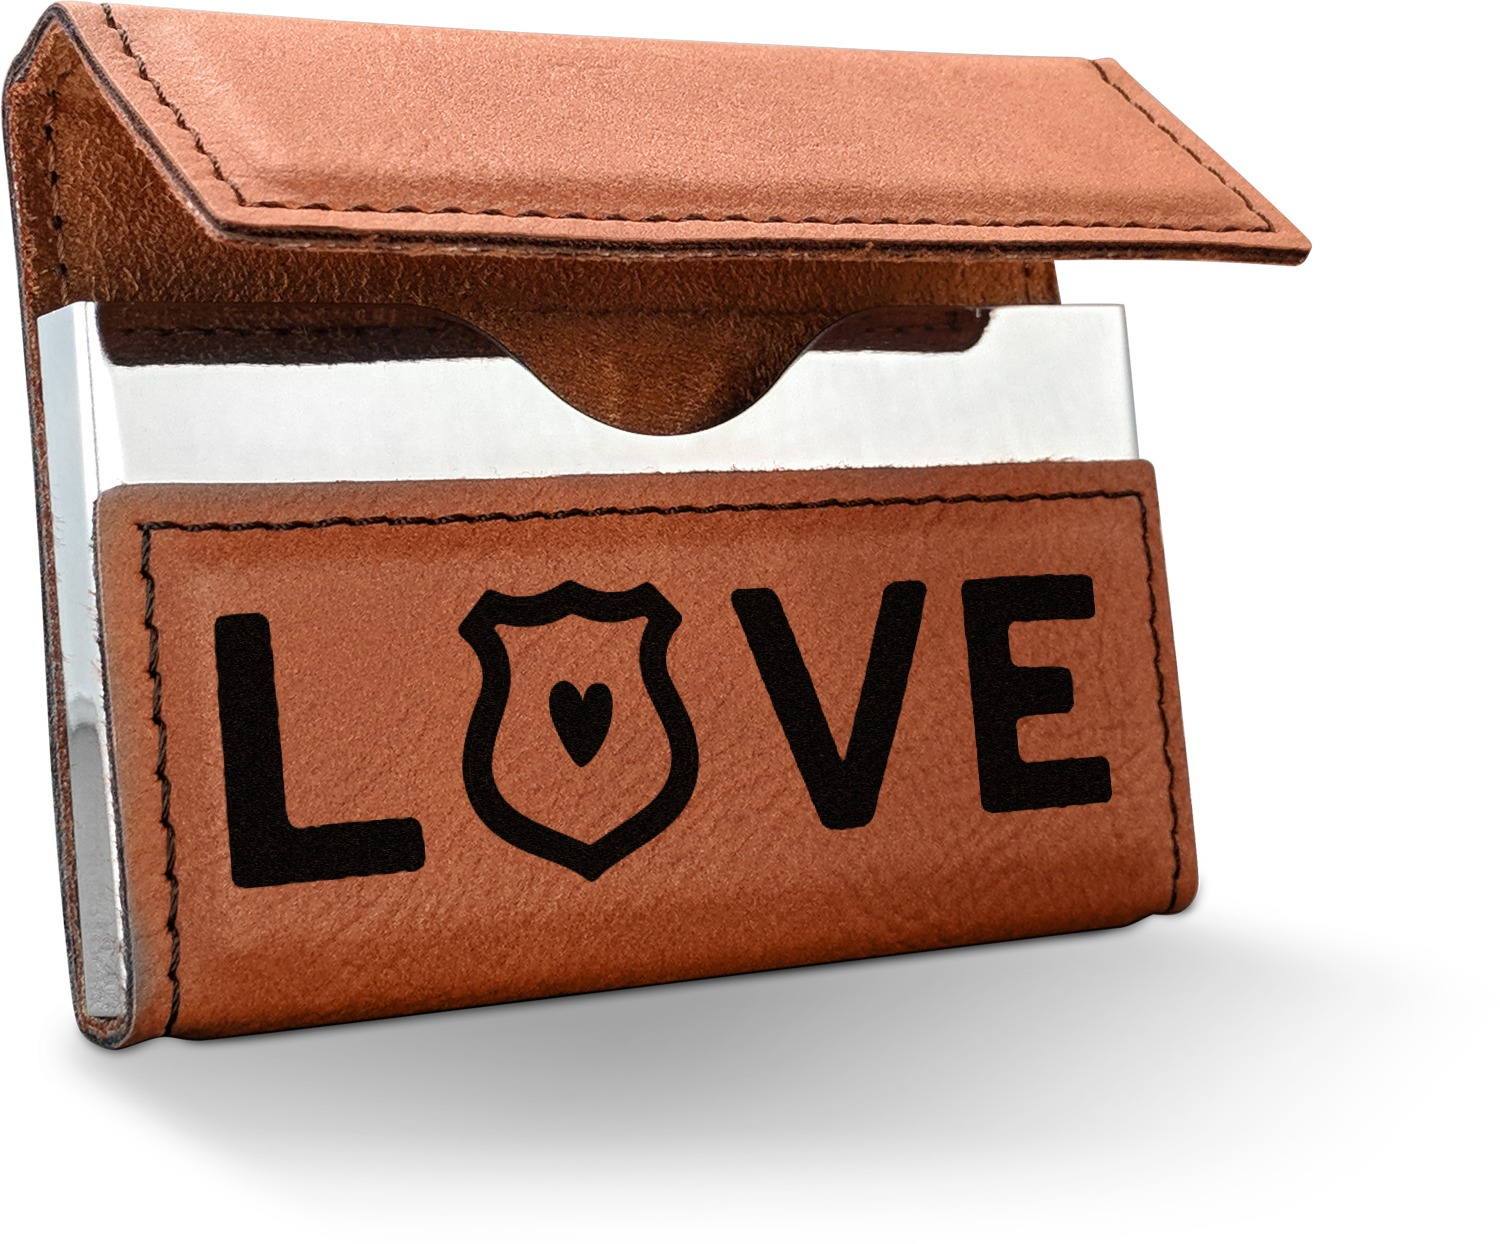 Police Quotes and Sayings Leatherette Business Card Holder ...